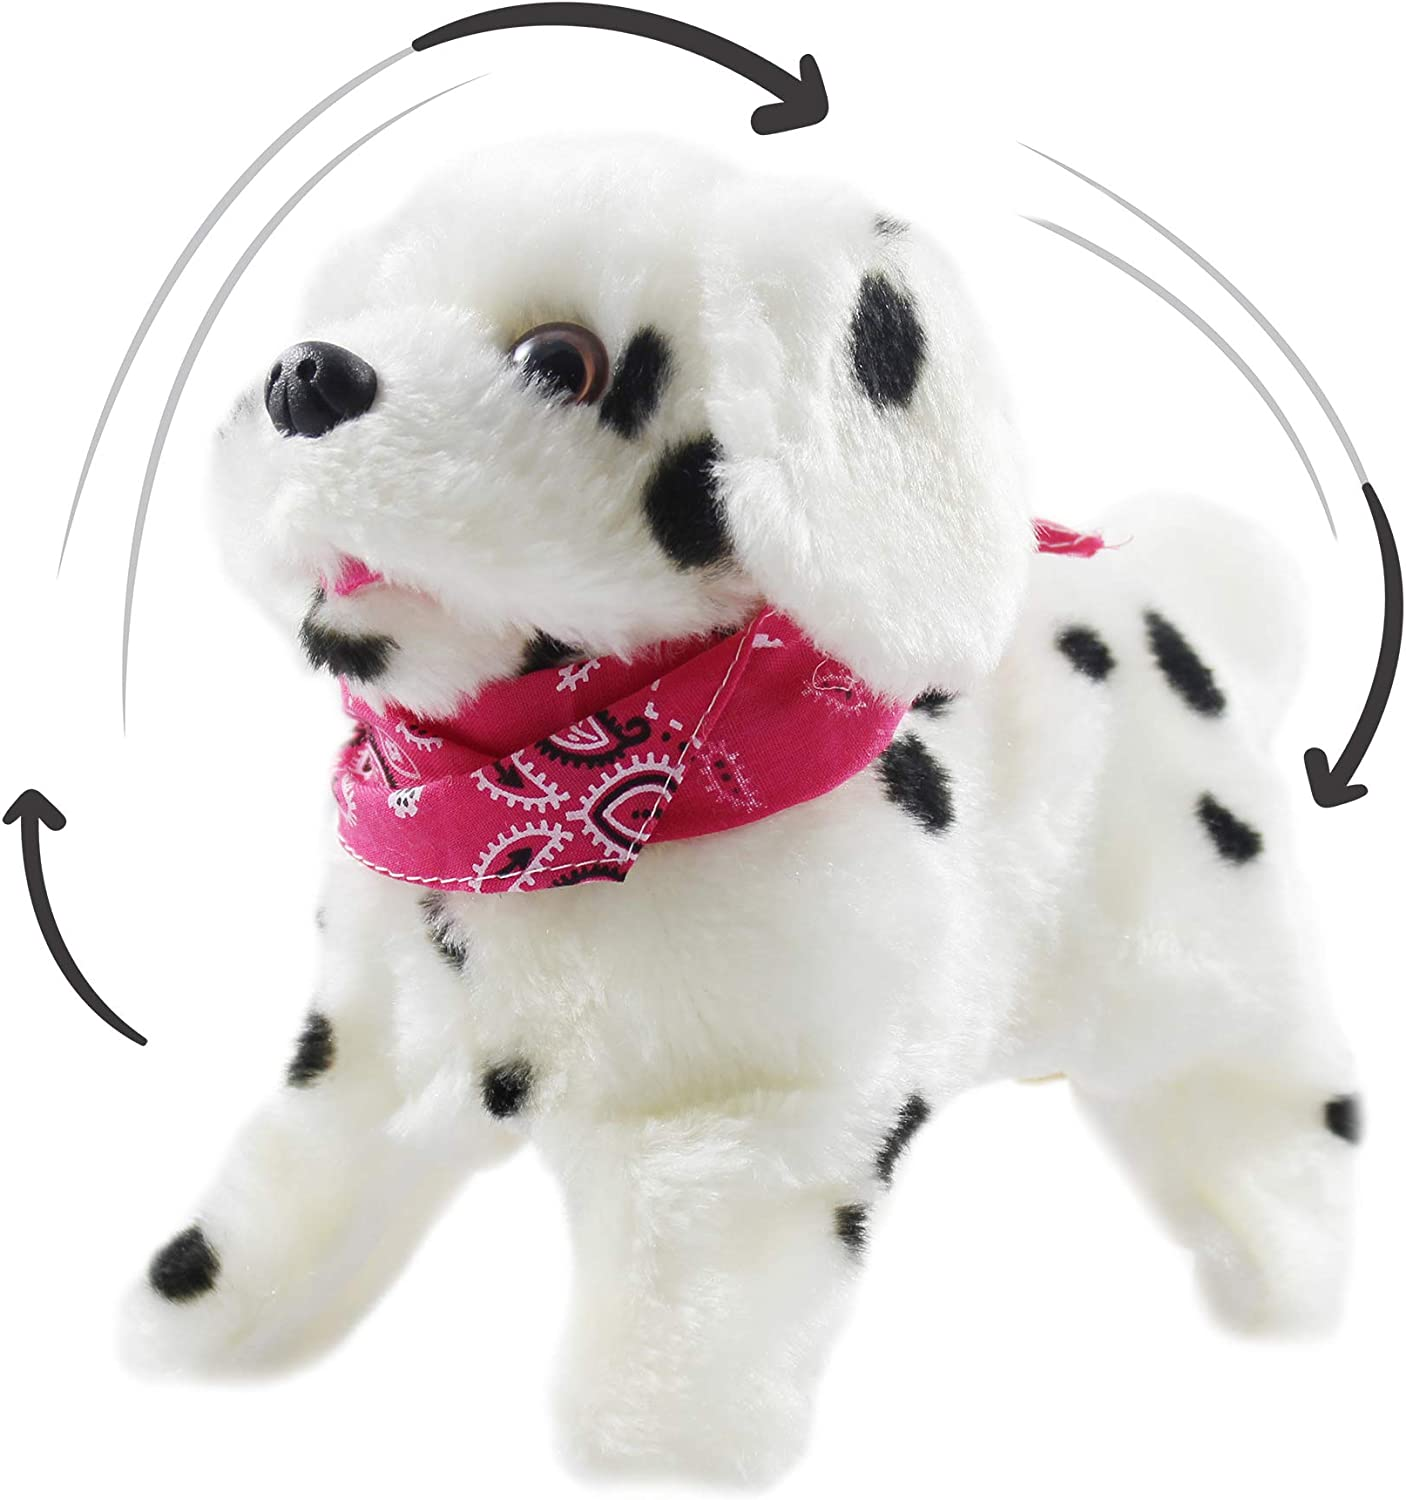 """Kids /& Pets Sitting 7/"""" Tall Gift Toy for Toddlers Haktoys Flip Over Puppy Walking Mechanical Barking Electronic Plush Cute Animal Dalmatian Dog Safe /& Durable Battery Operated Somersaulting"""